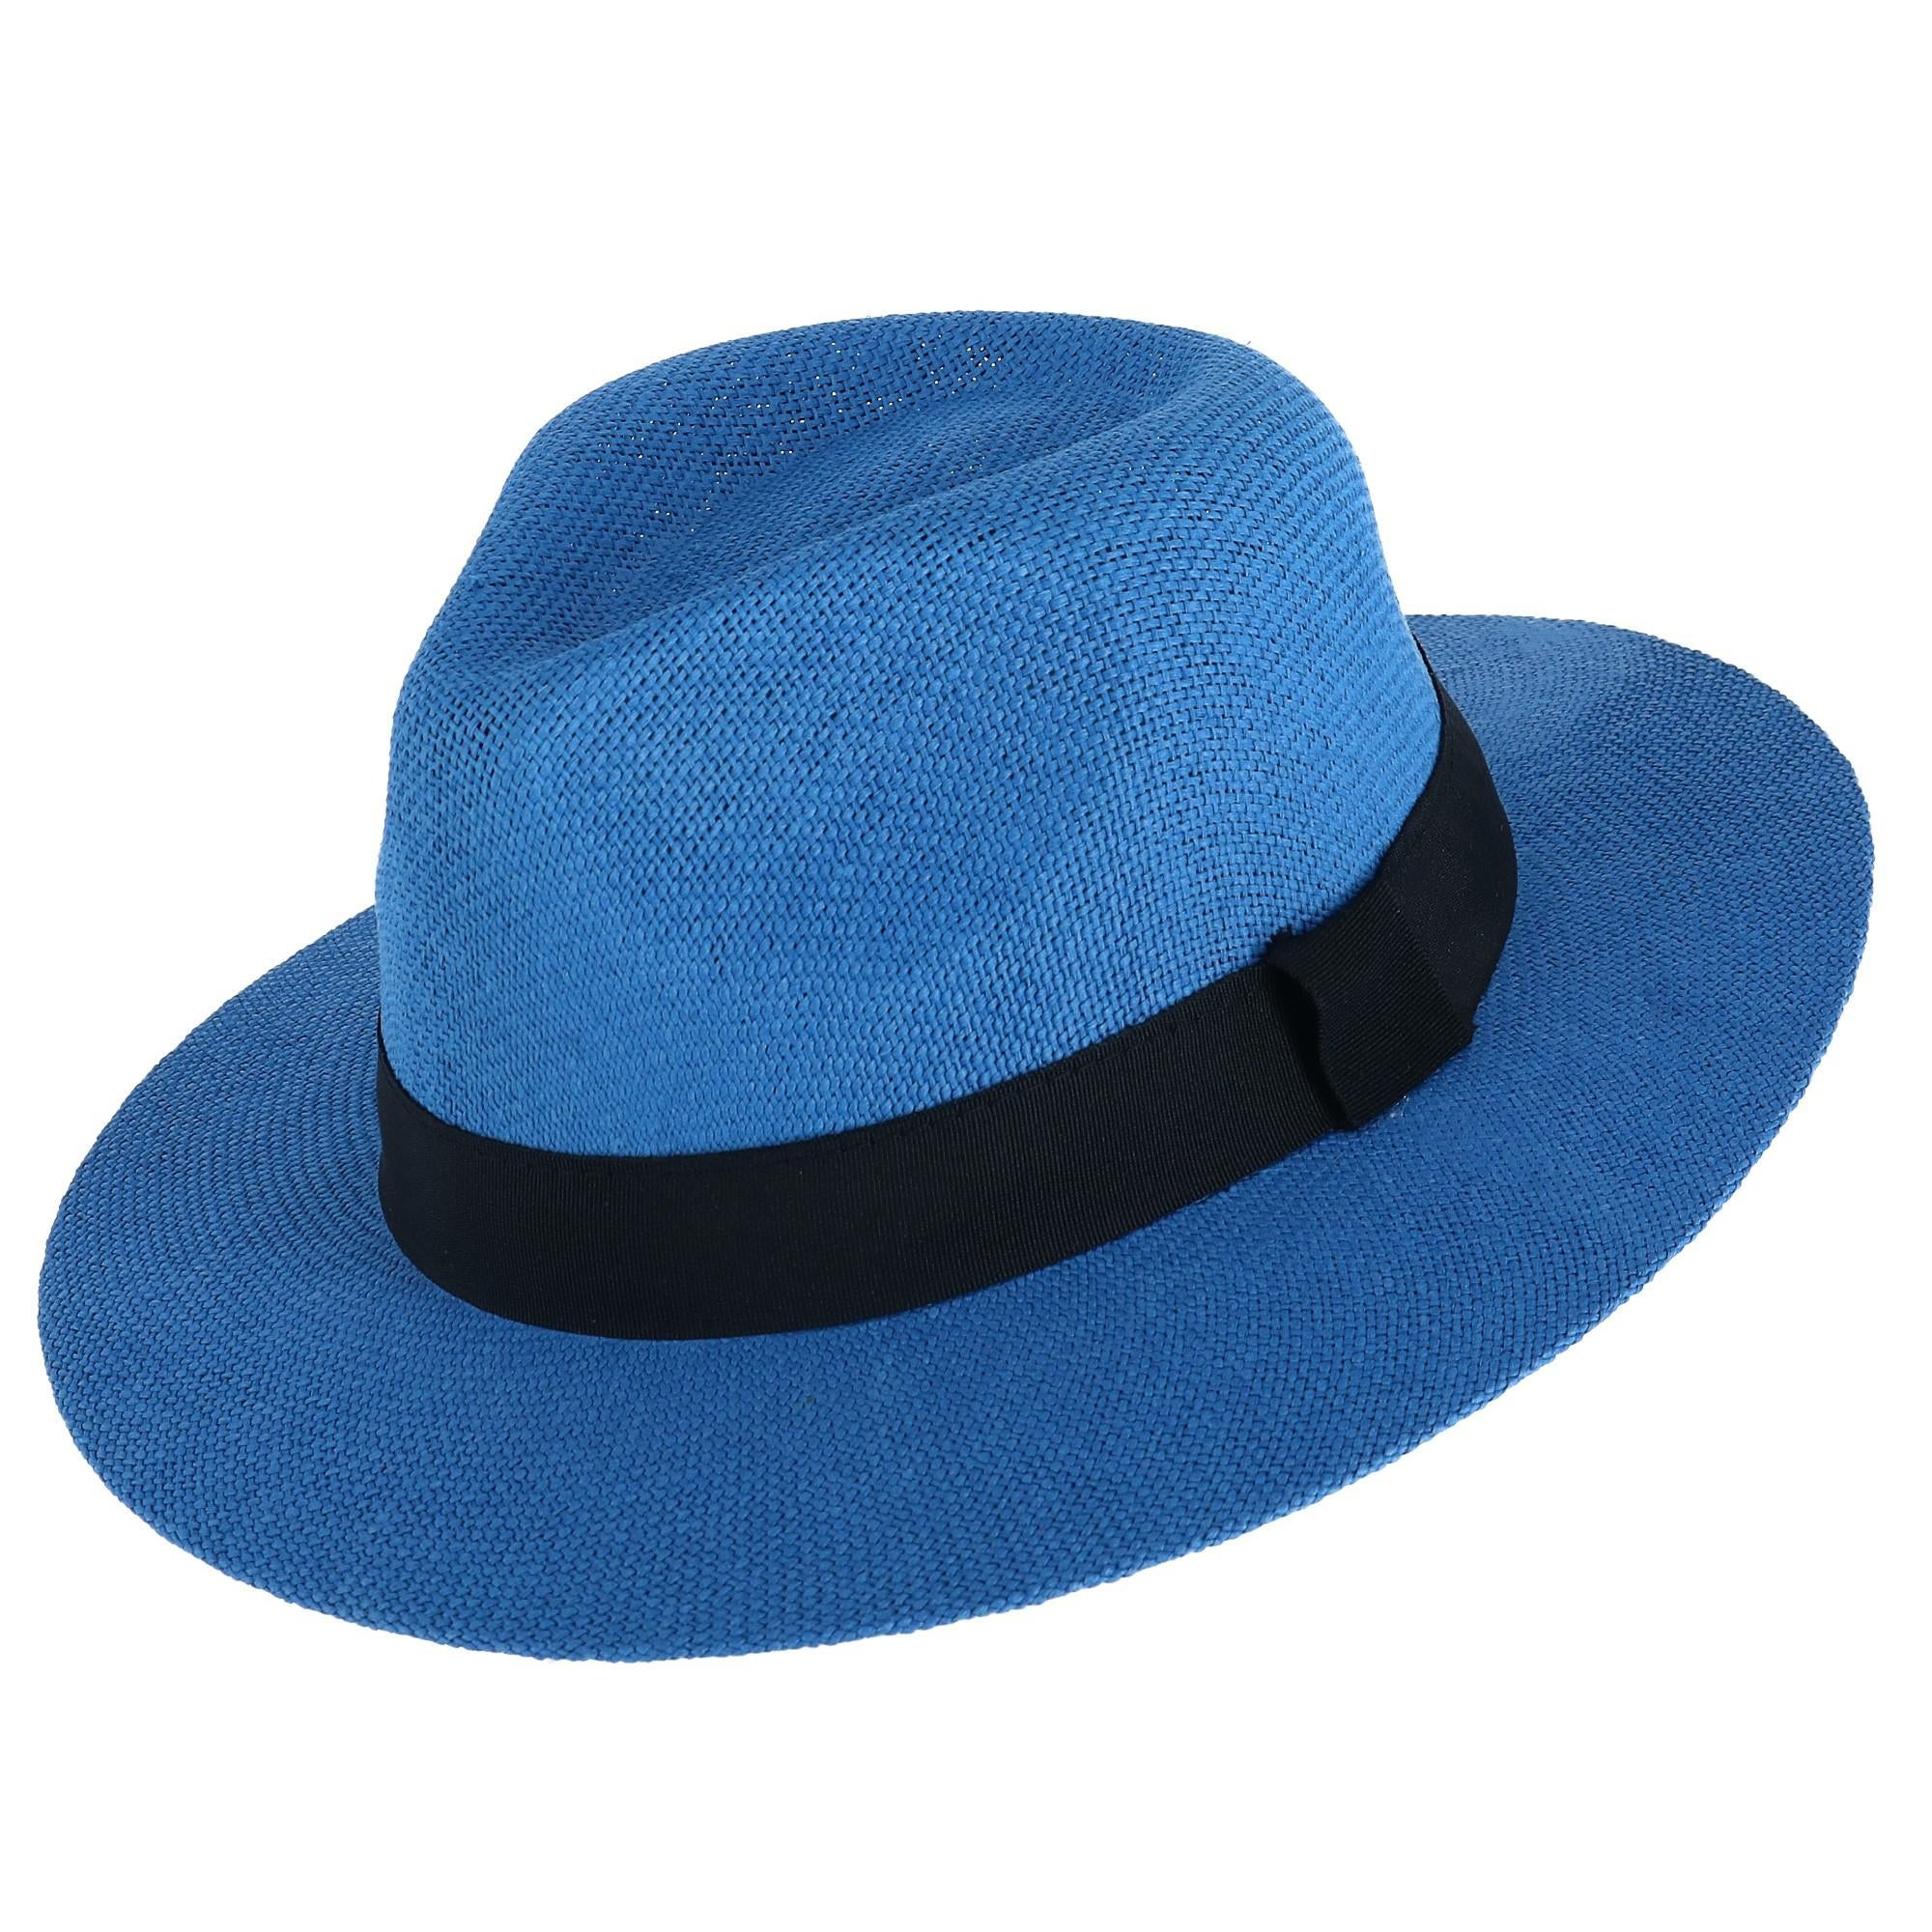 c310f2a13 Fedora Hats | Find Great Accessories Deals Shopping at Overstock